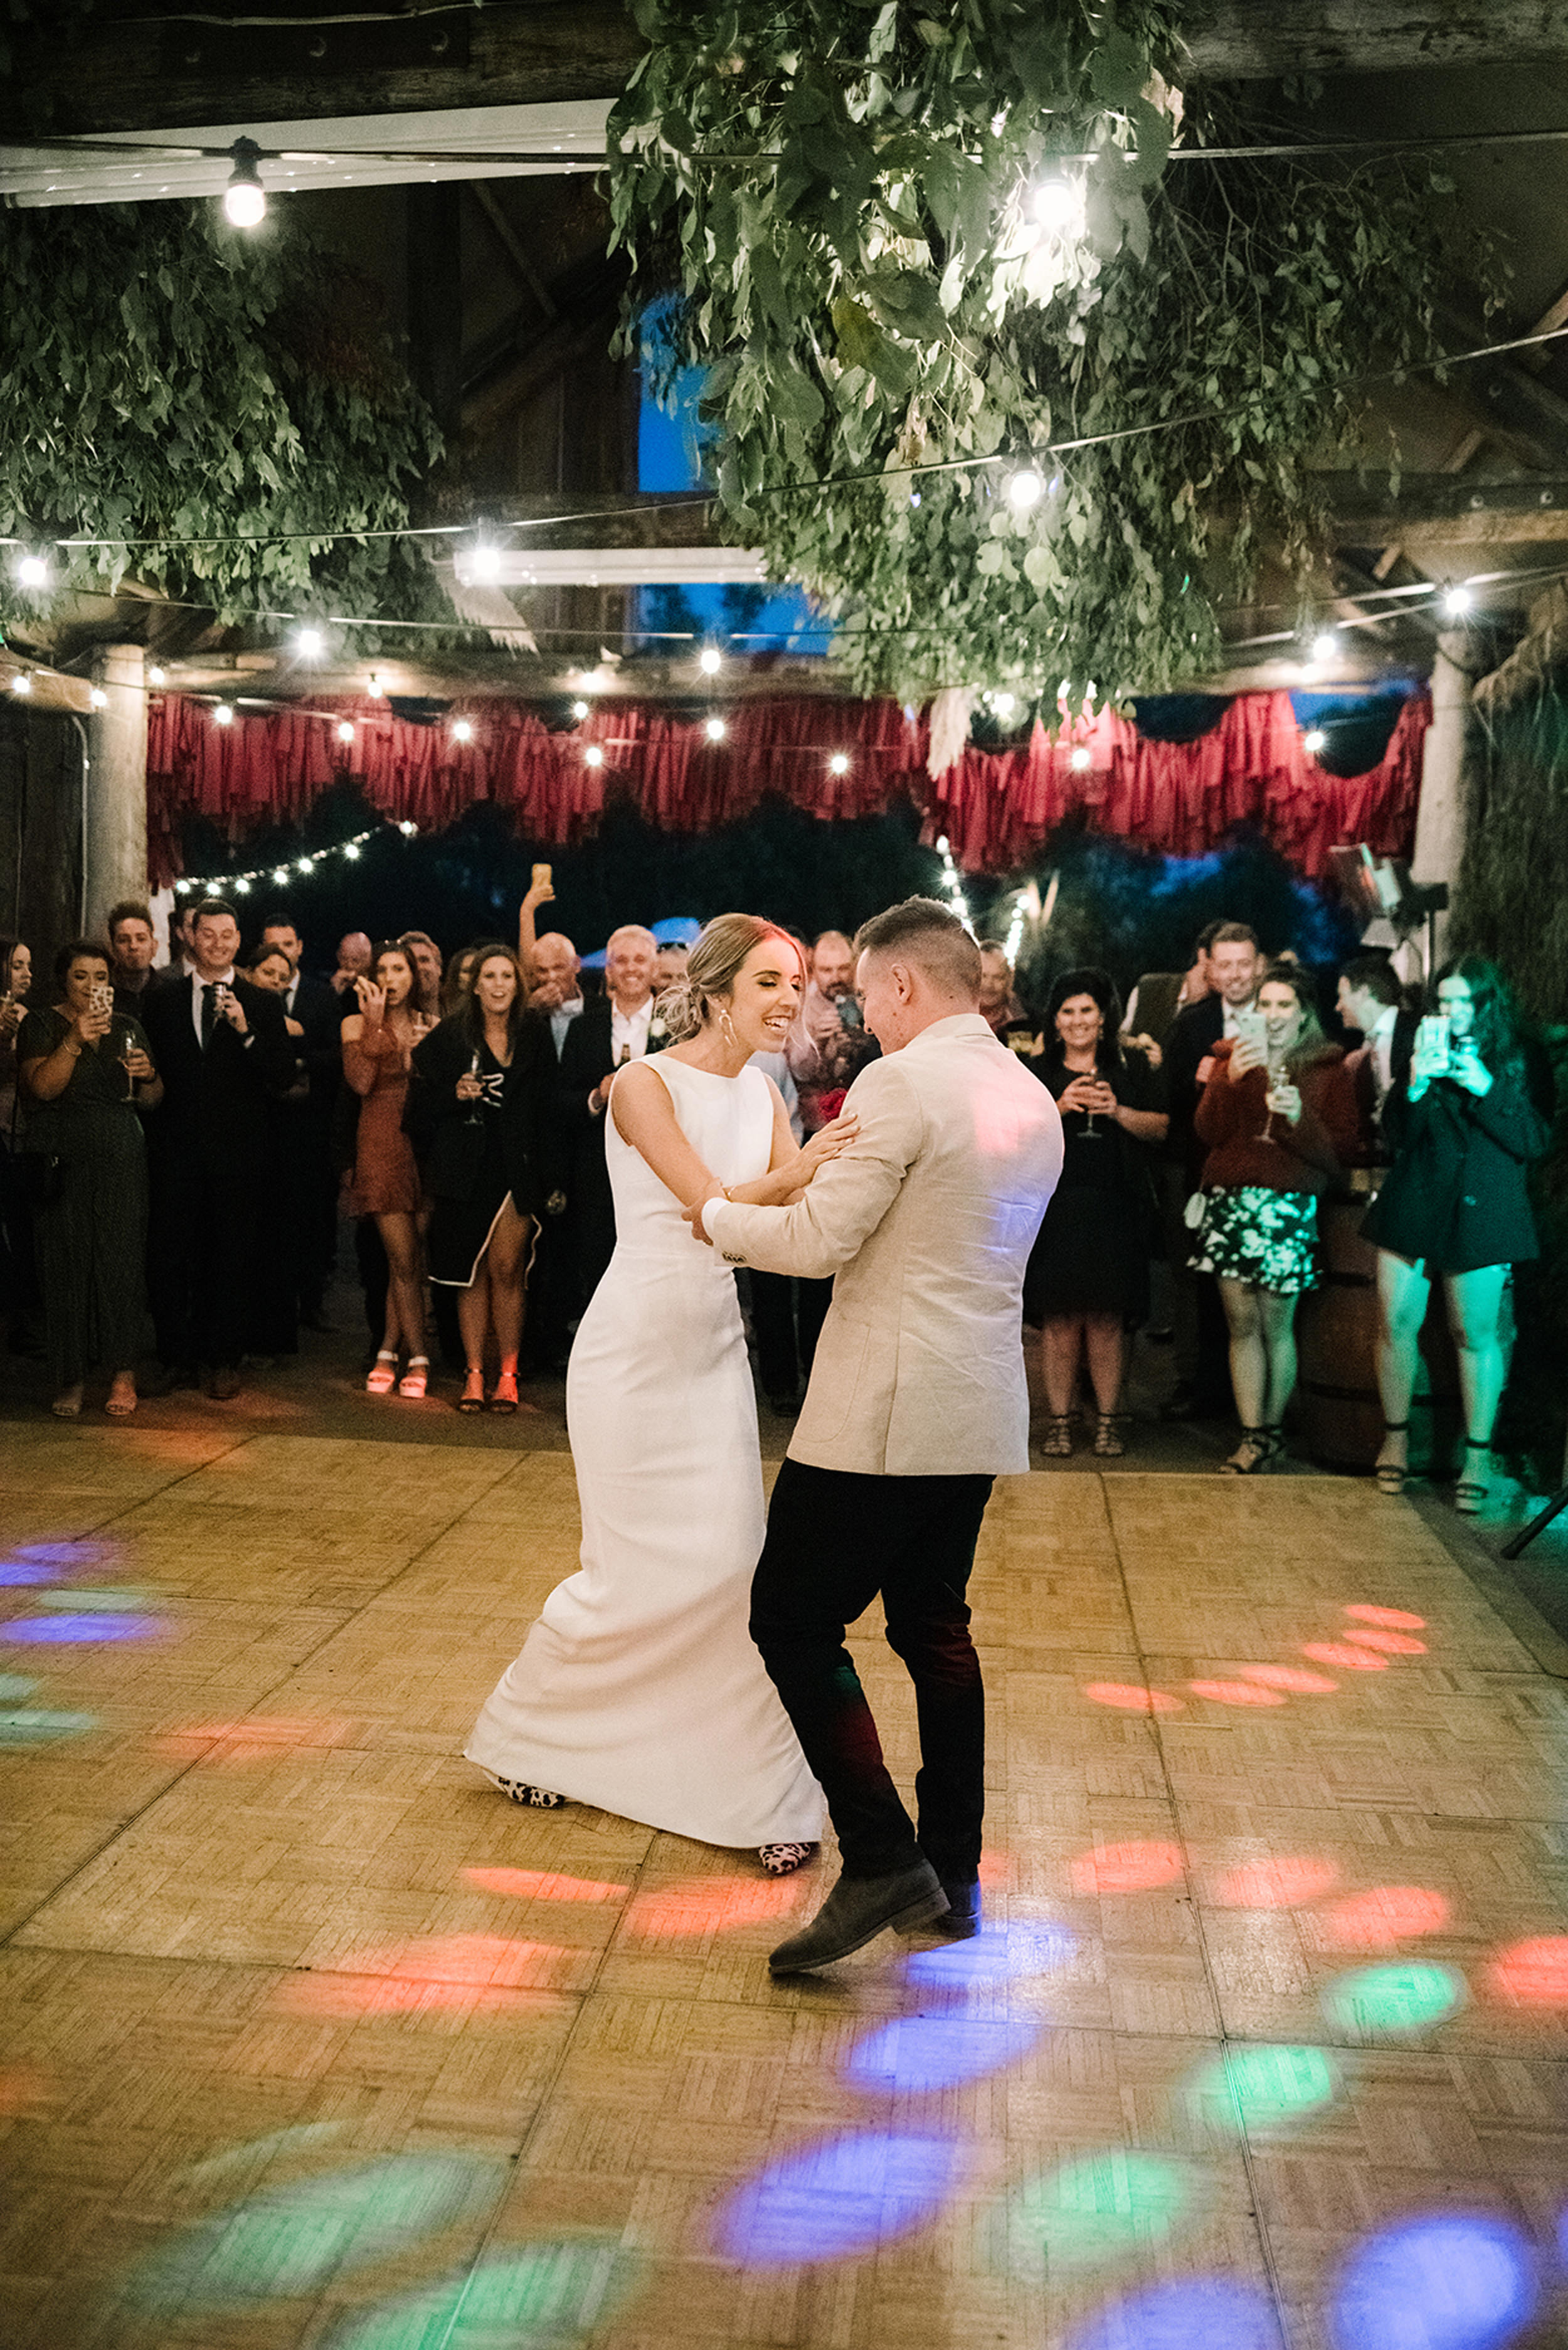 I_Got_You_Babe_Co._Megan_Andrew_Country_Property_Wedding_Victoria0161.JPG